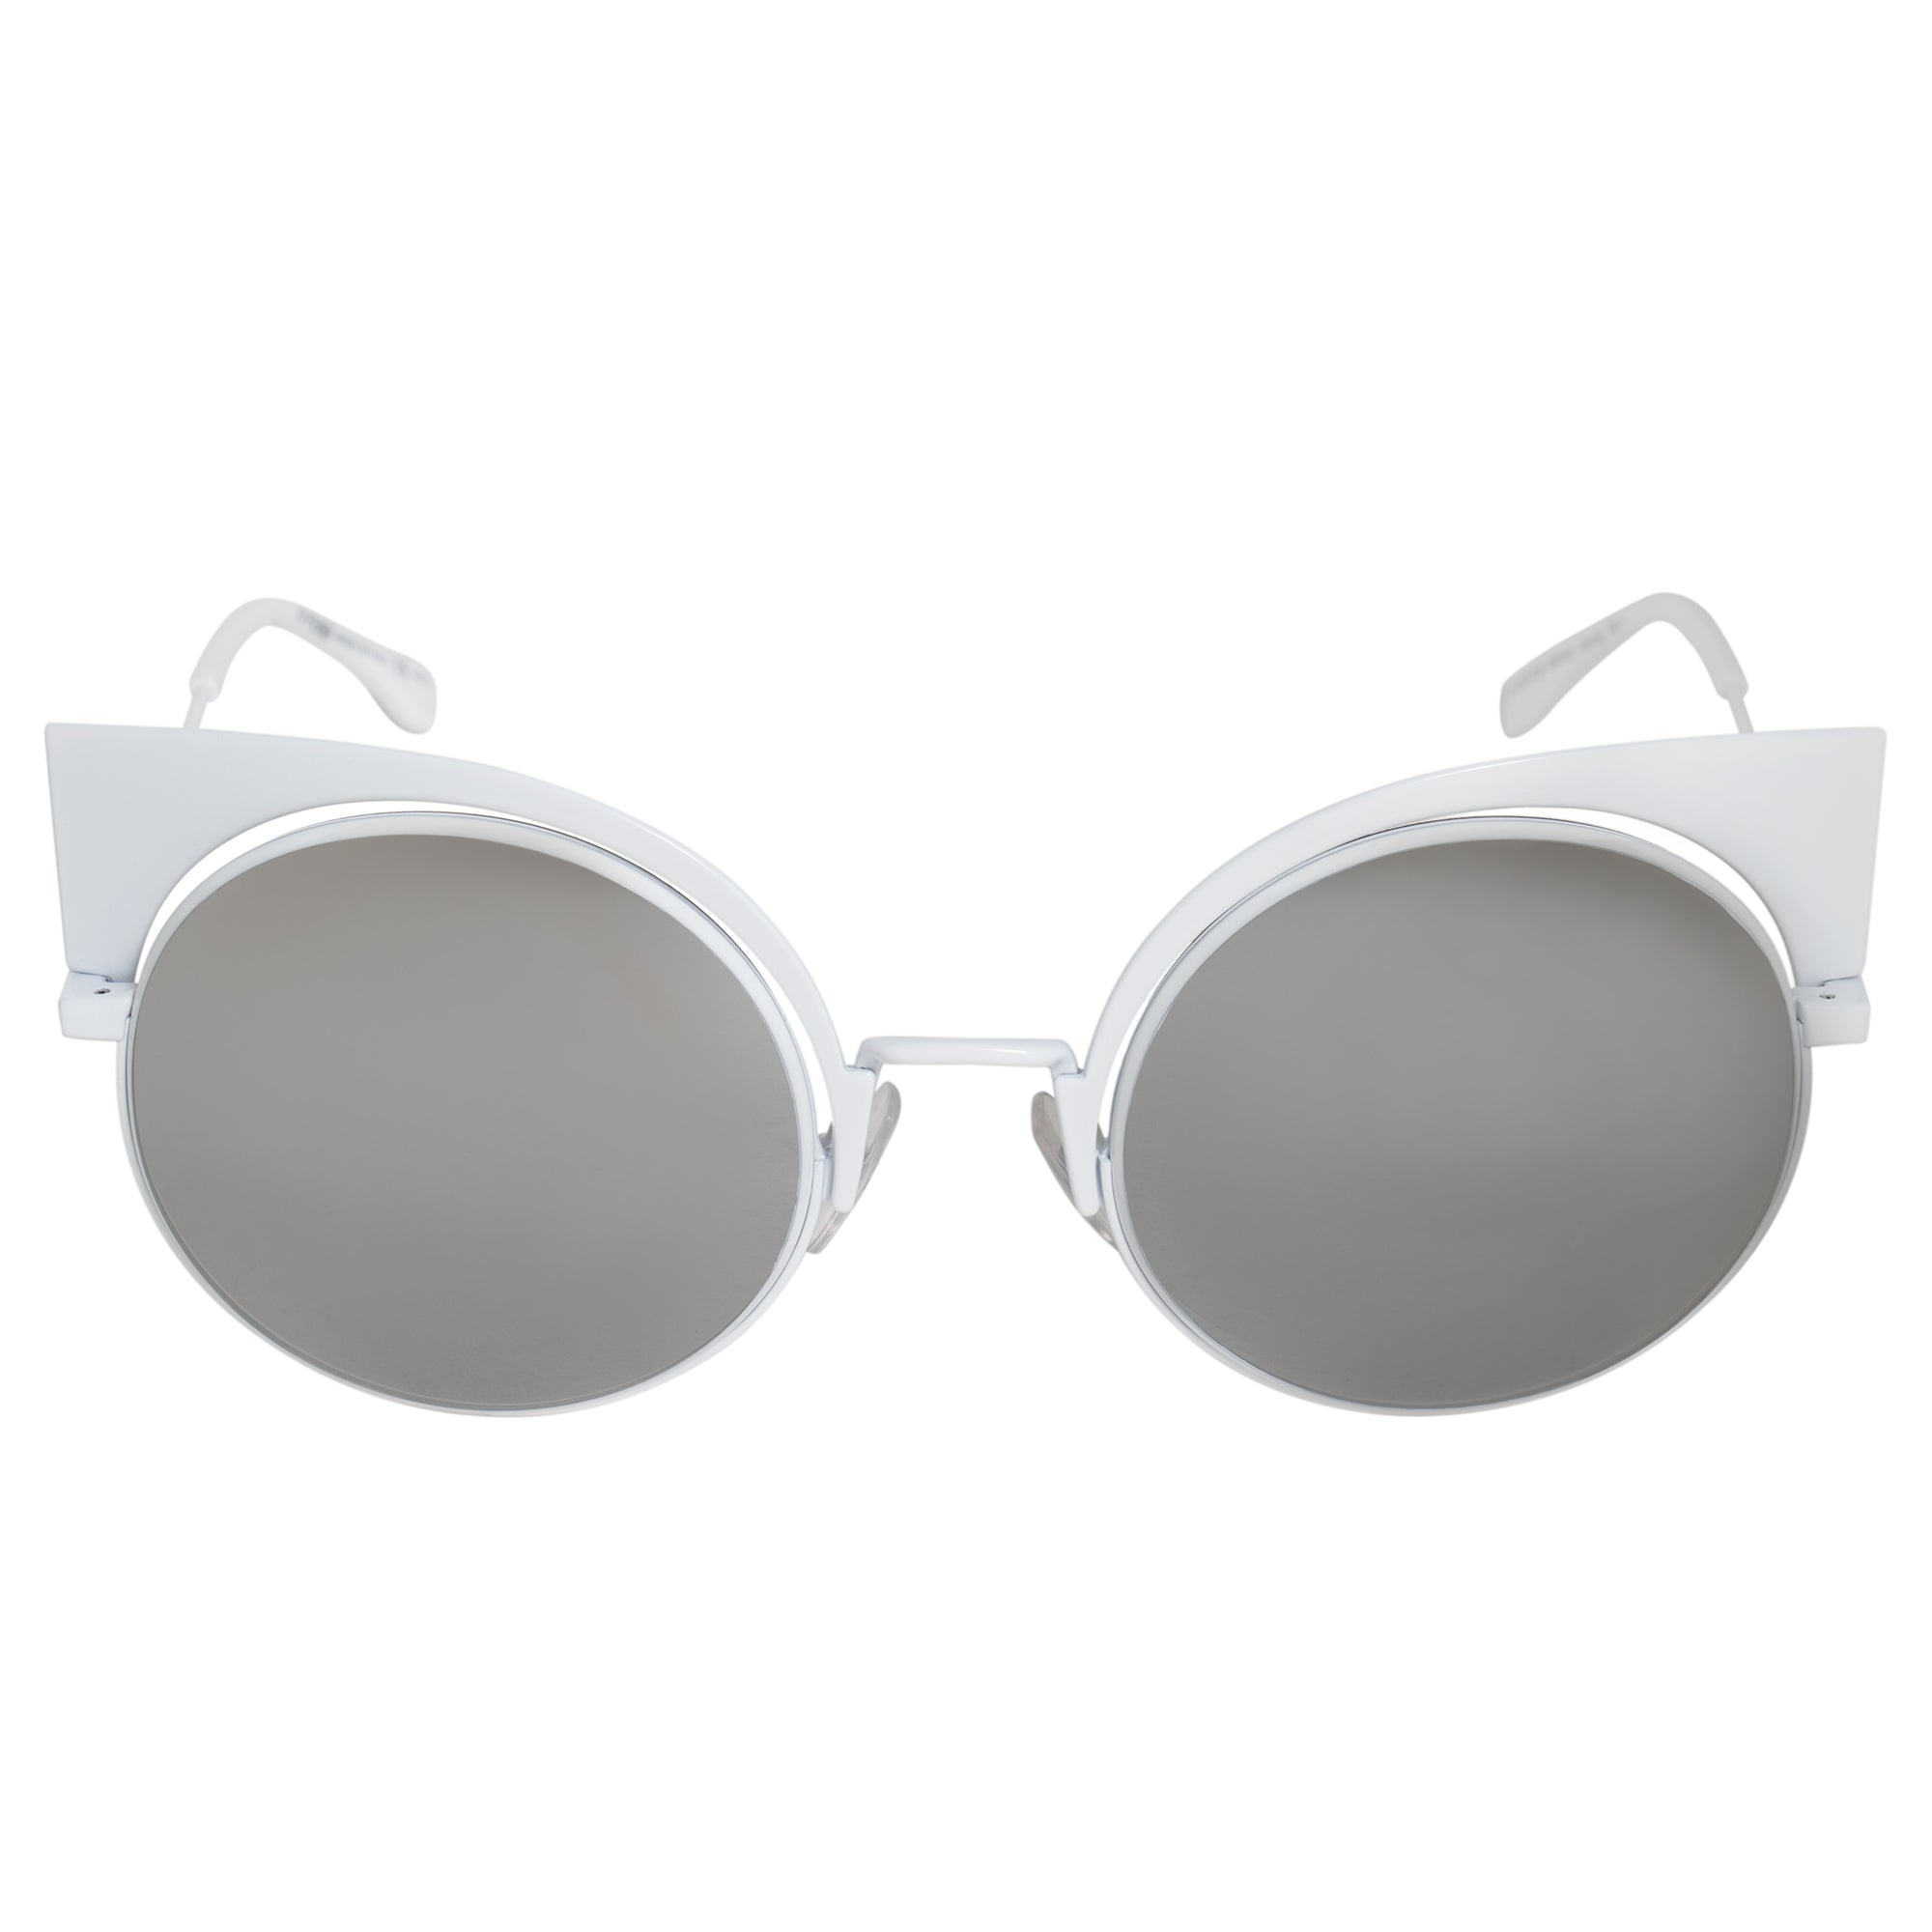 Fendi Eyeshine Cat Eye Sunglasses FF0177S DMV SS 53